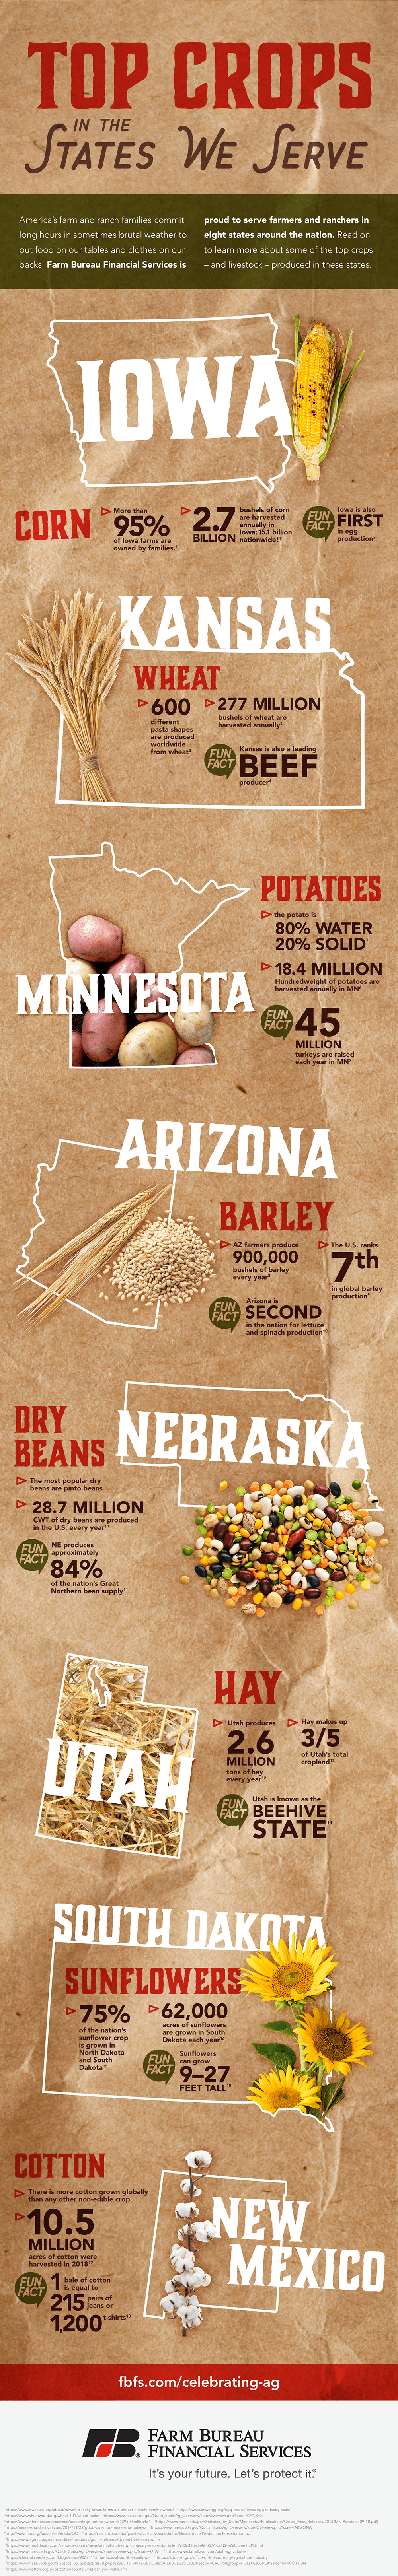 Top Crops in the States We Serve